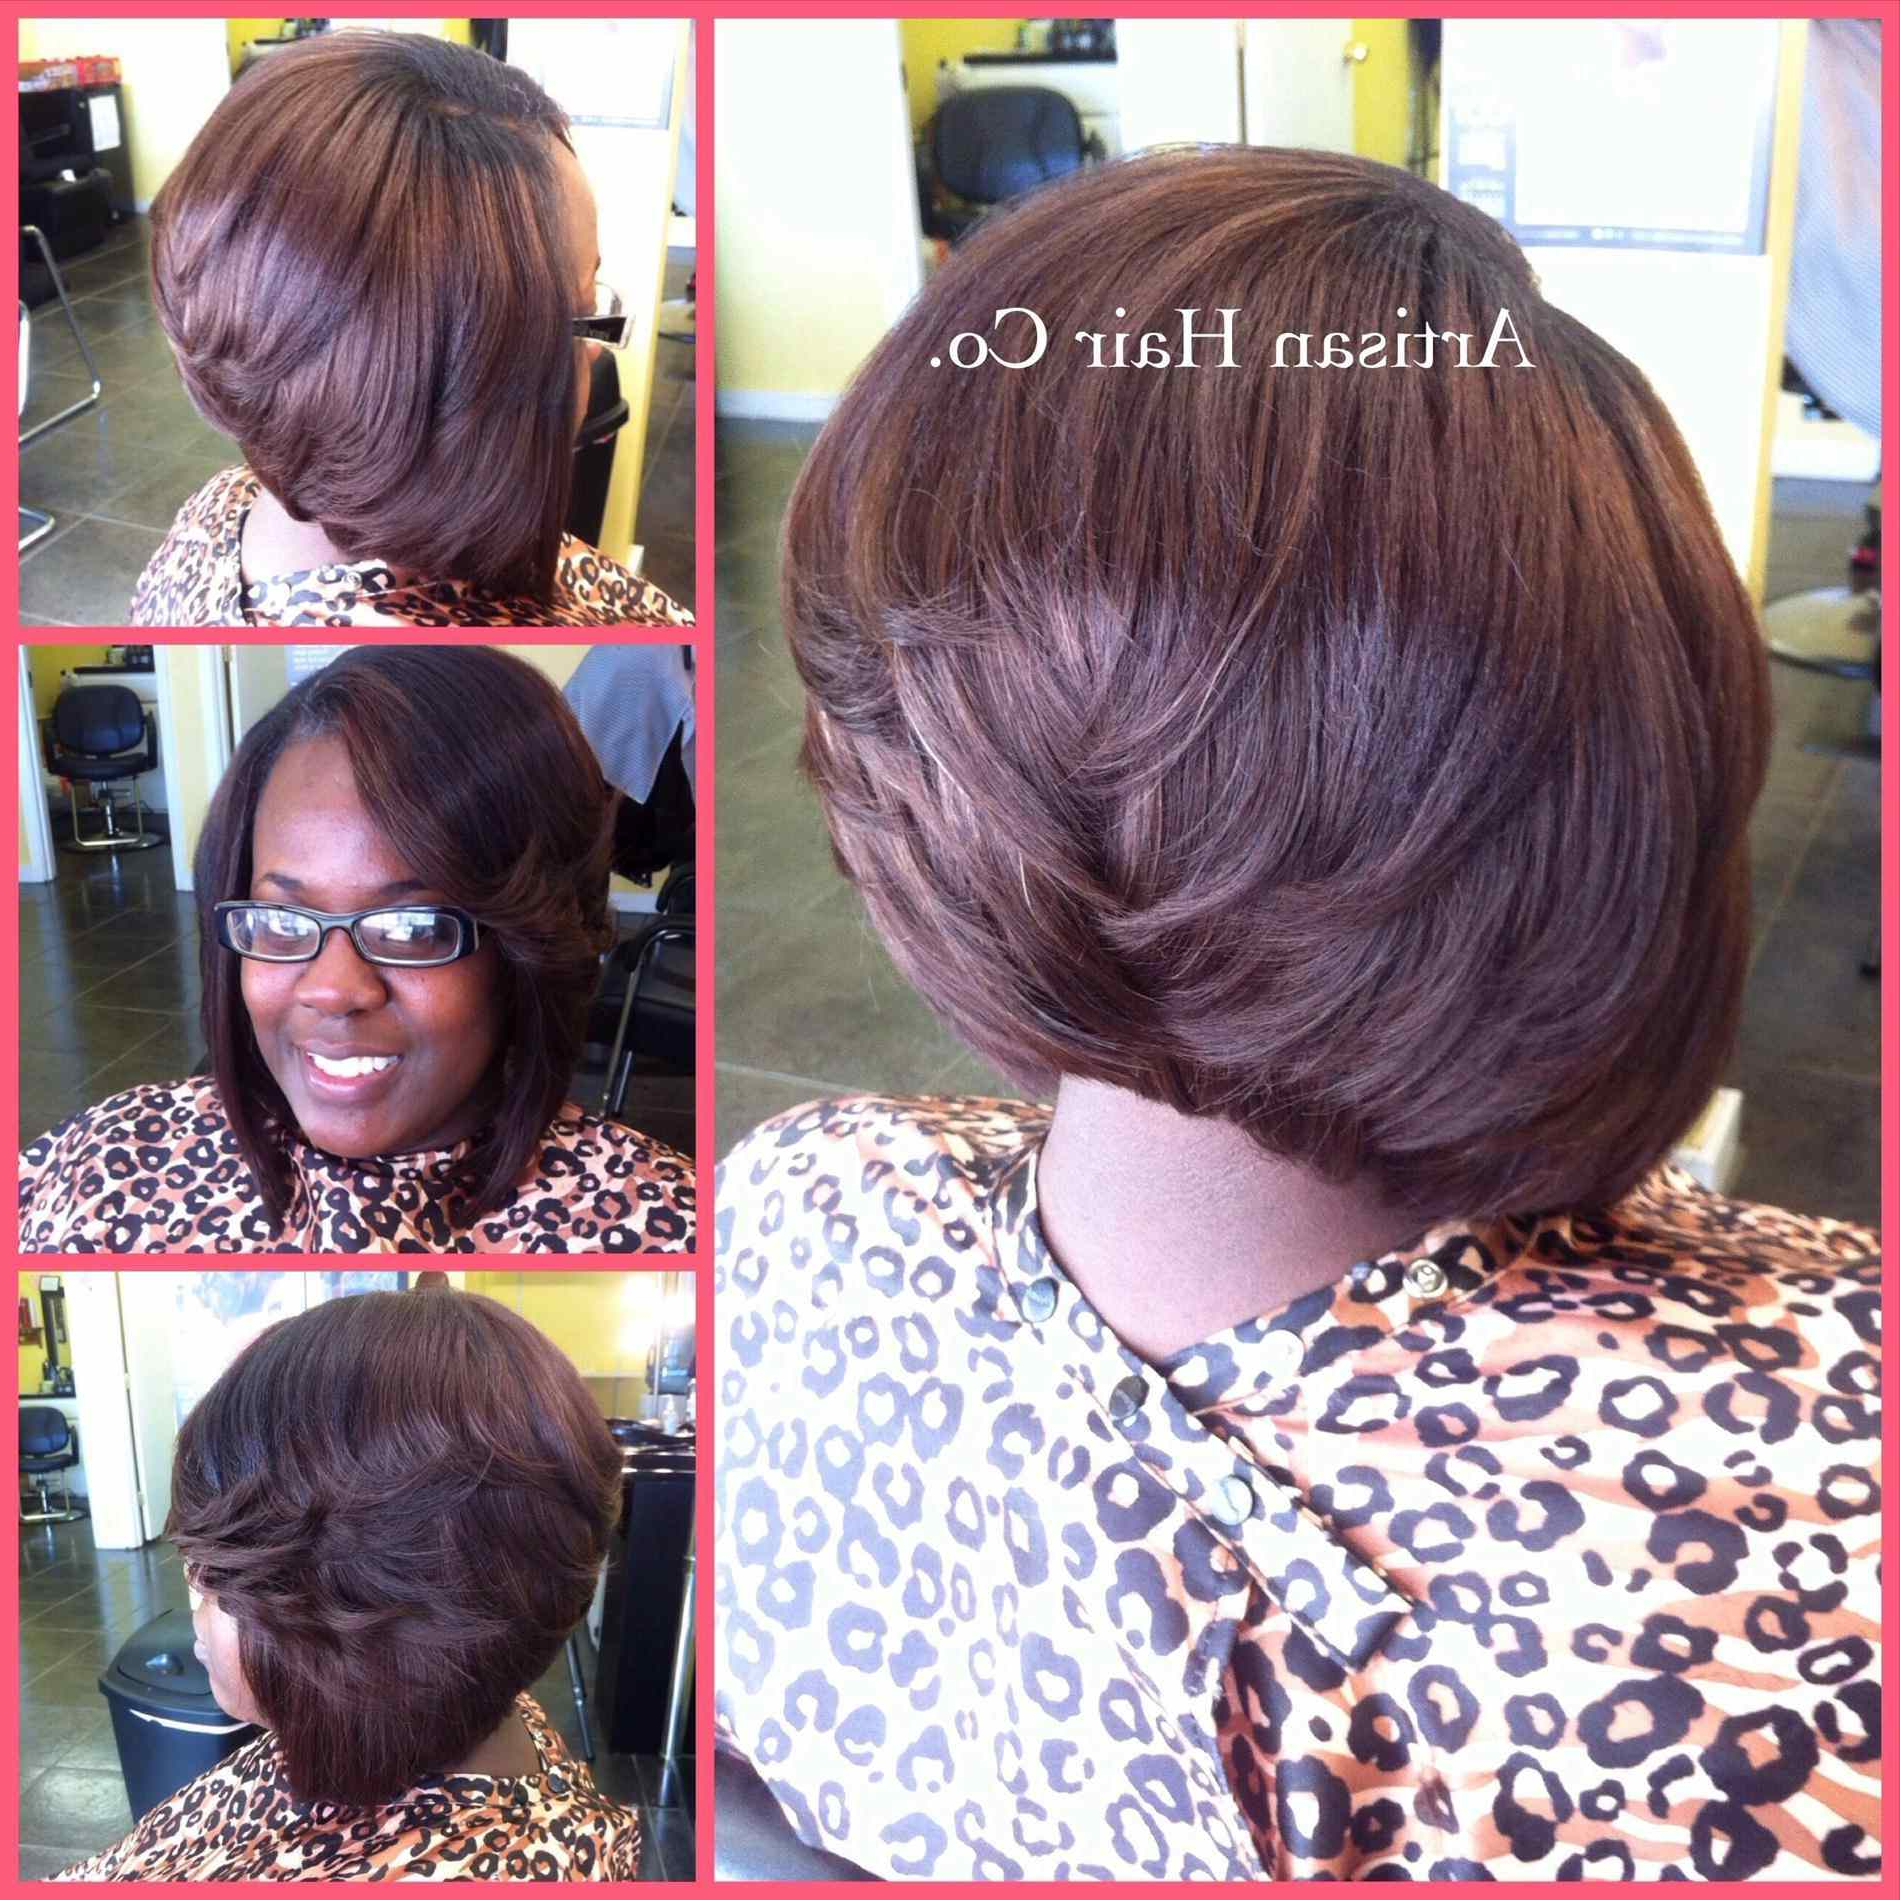 Classy Layered Bob African American Hairstyles On Short Layered Bob In Short Layered Hairstyles For Black Women (View 25 of 25)